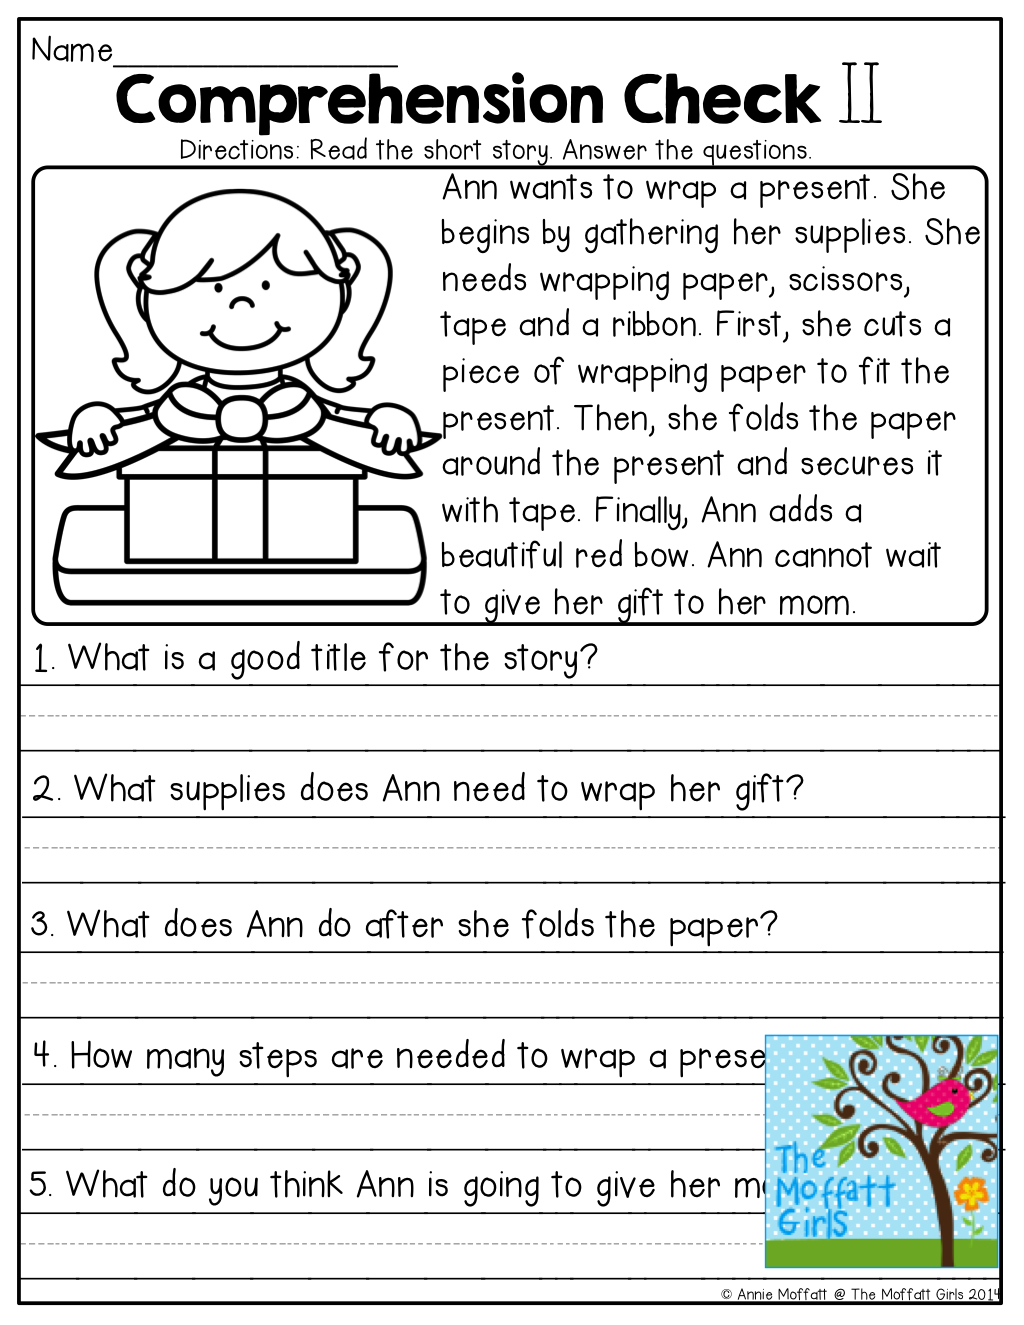 Comprehension Checks And Tons Of Other Great Printables! | Learn It - Free Printable Short Stories With Comprehension Questions